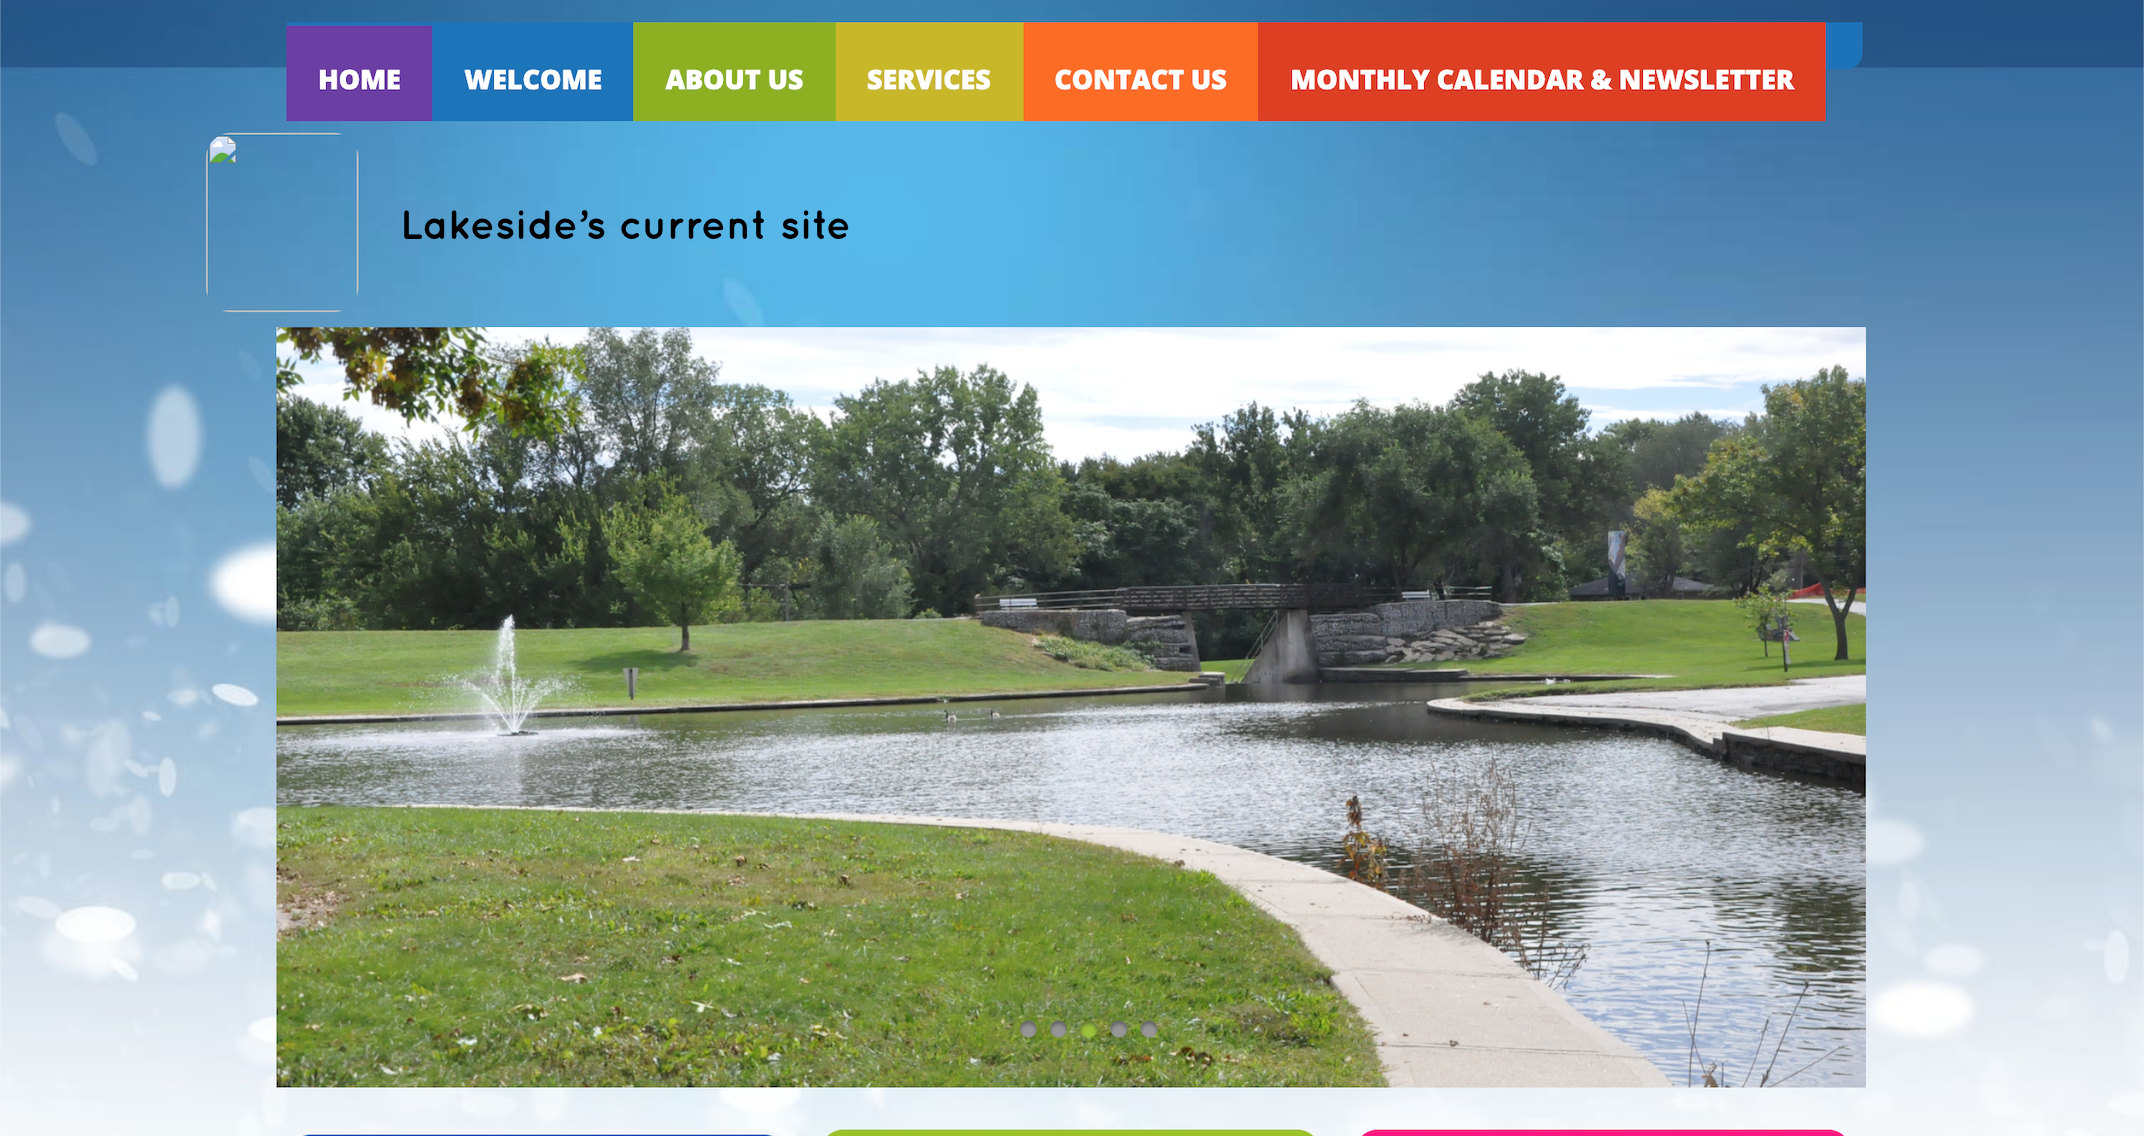 Lakeside's existing homepage